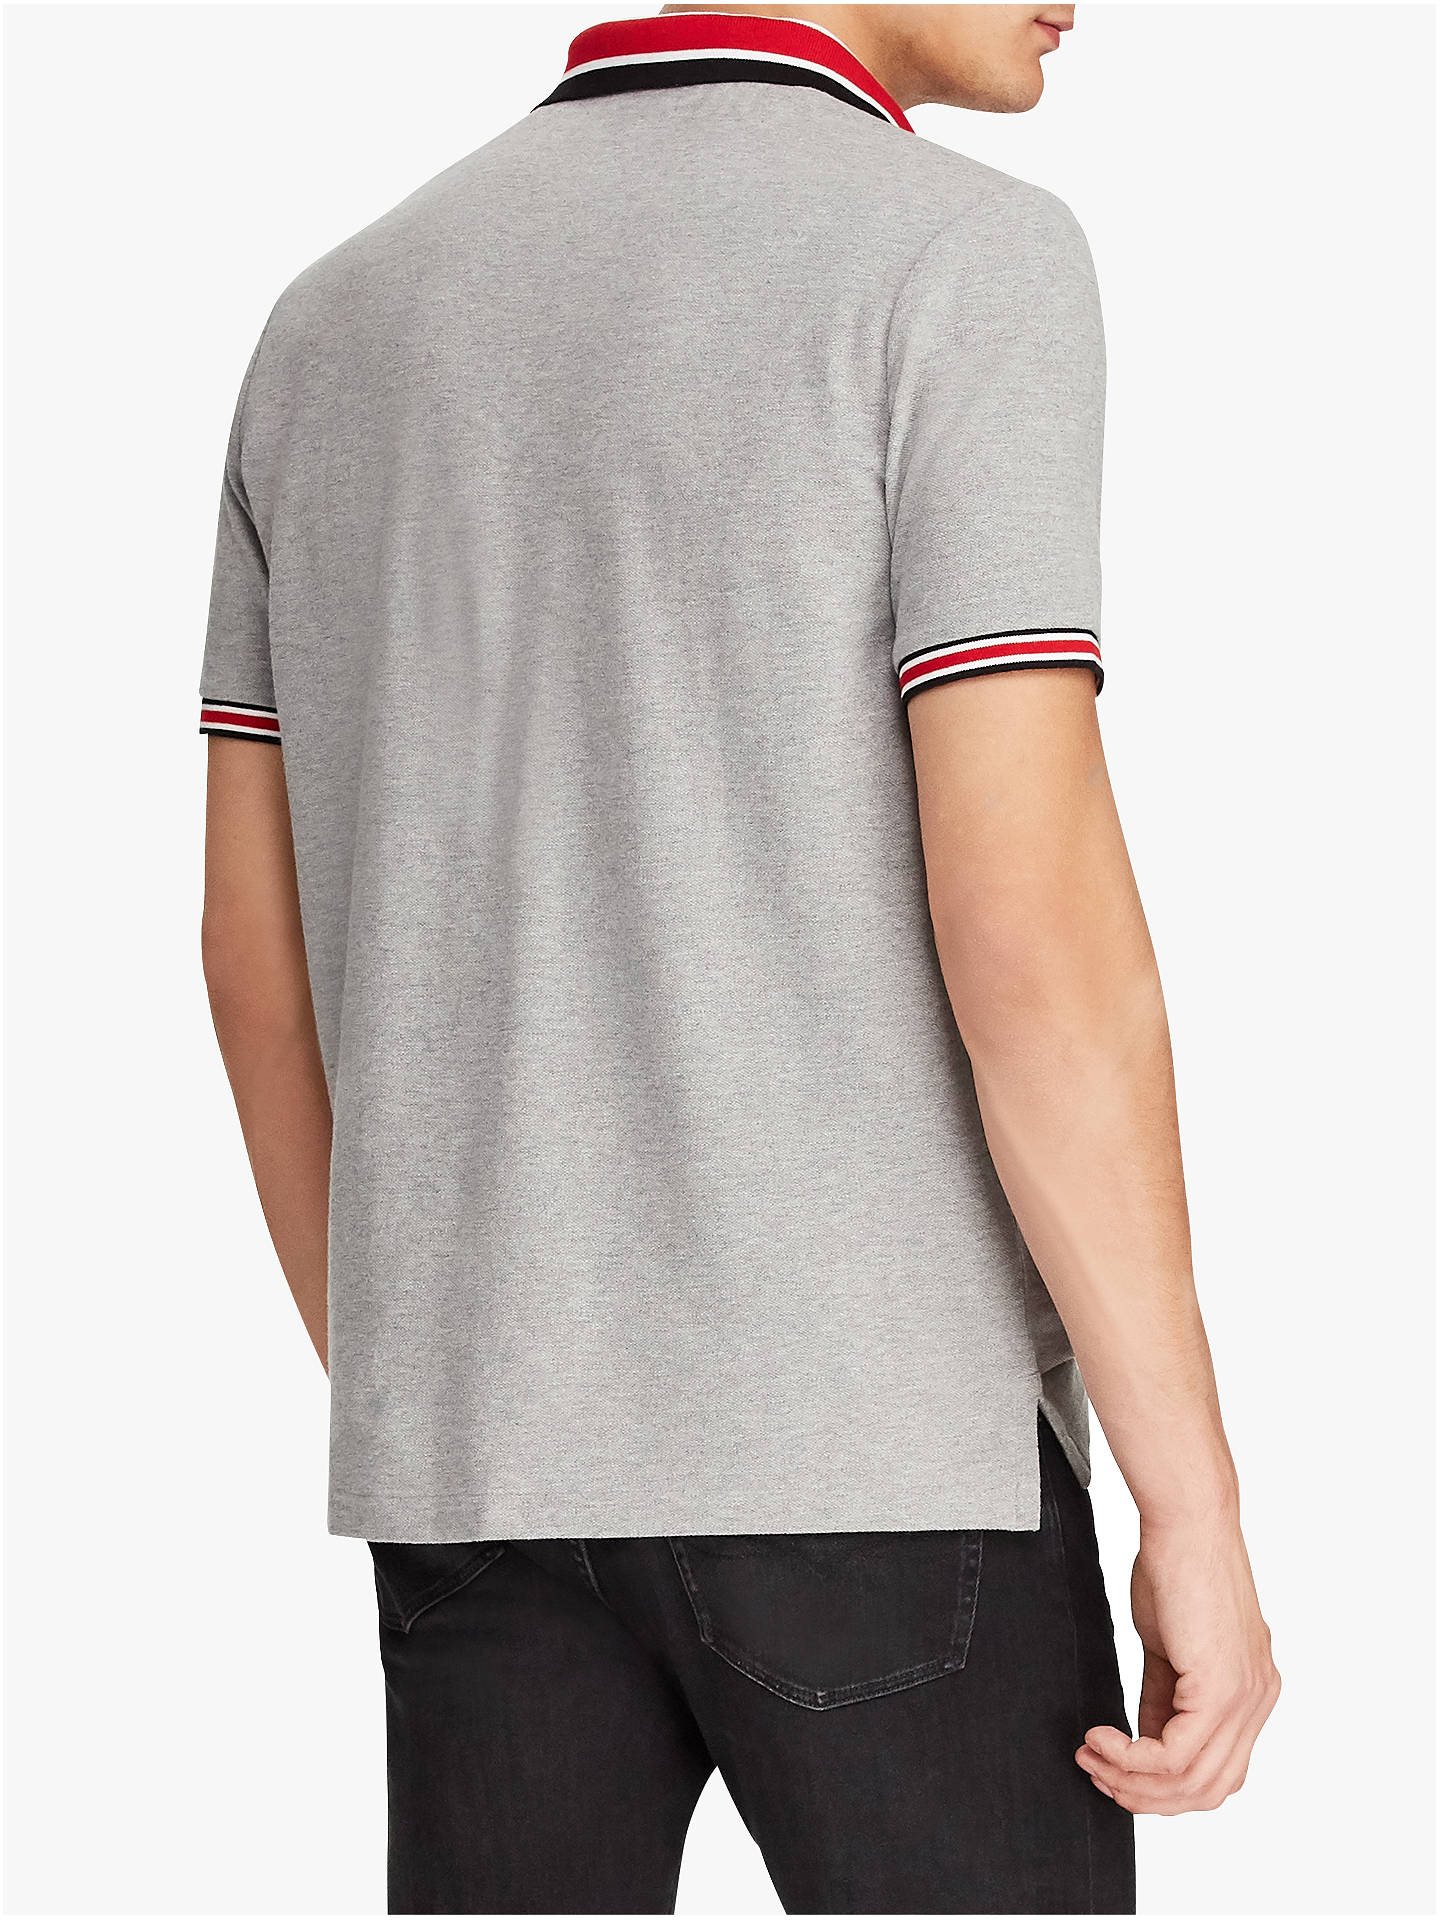 BuyPolo Ralph Lauren Short Sleeve Tipped Polo Shirt, Andover Heather, XXL Online at johnlewis.com